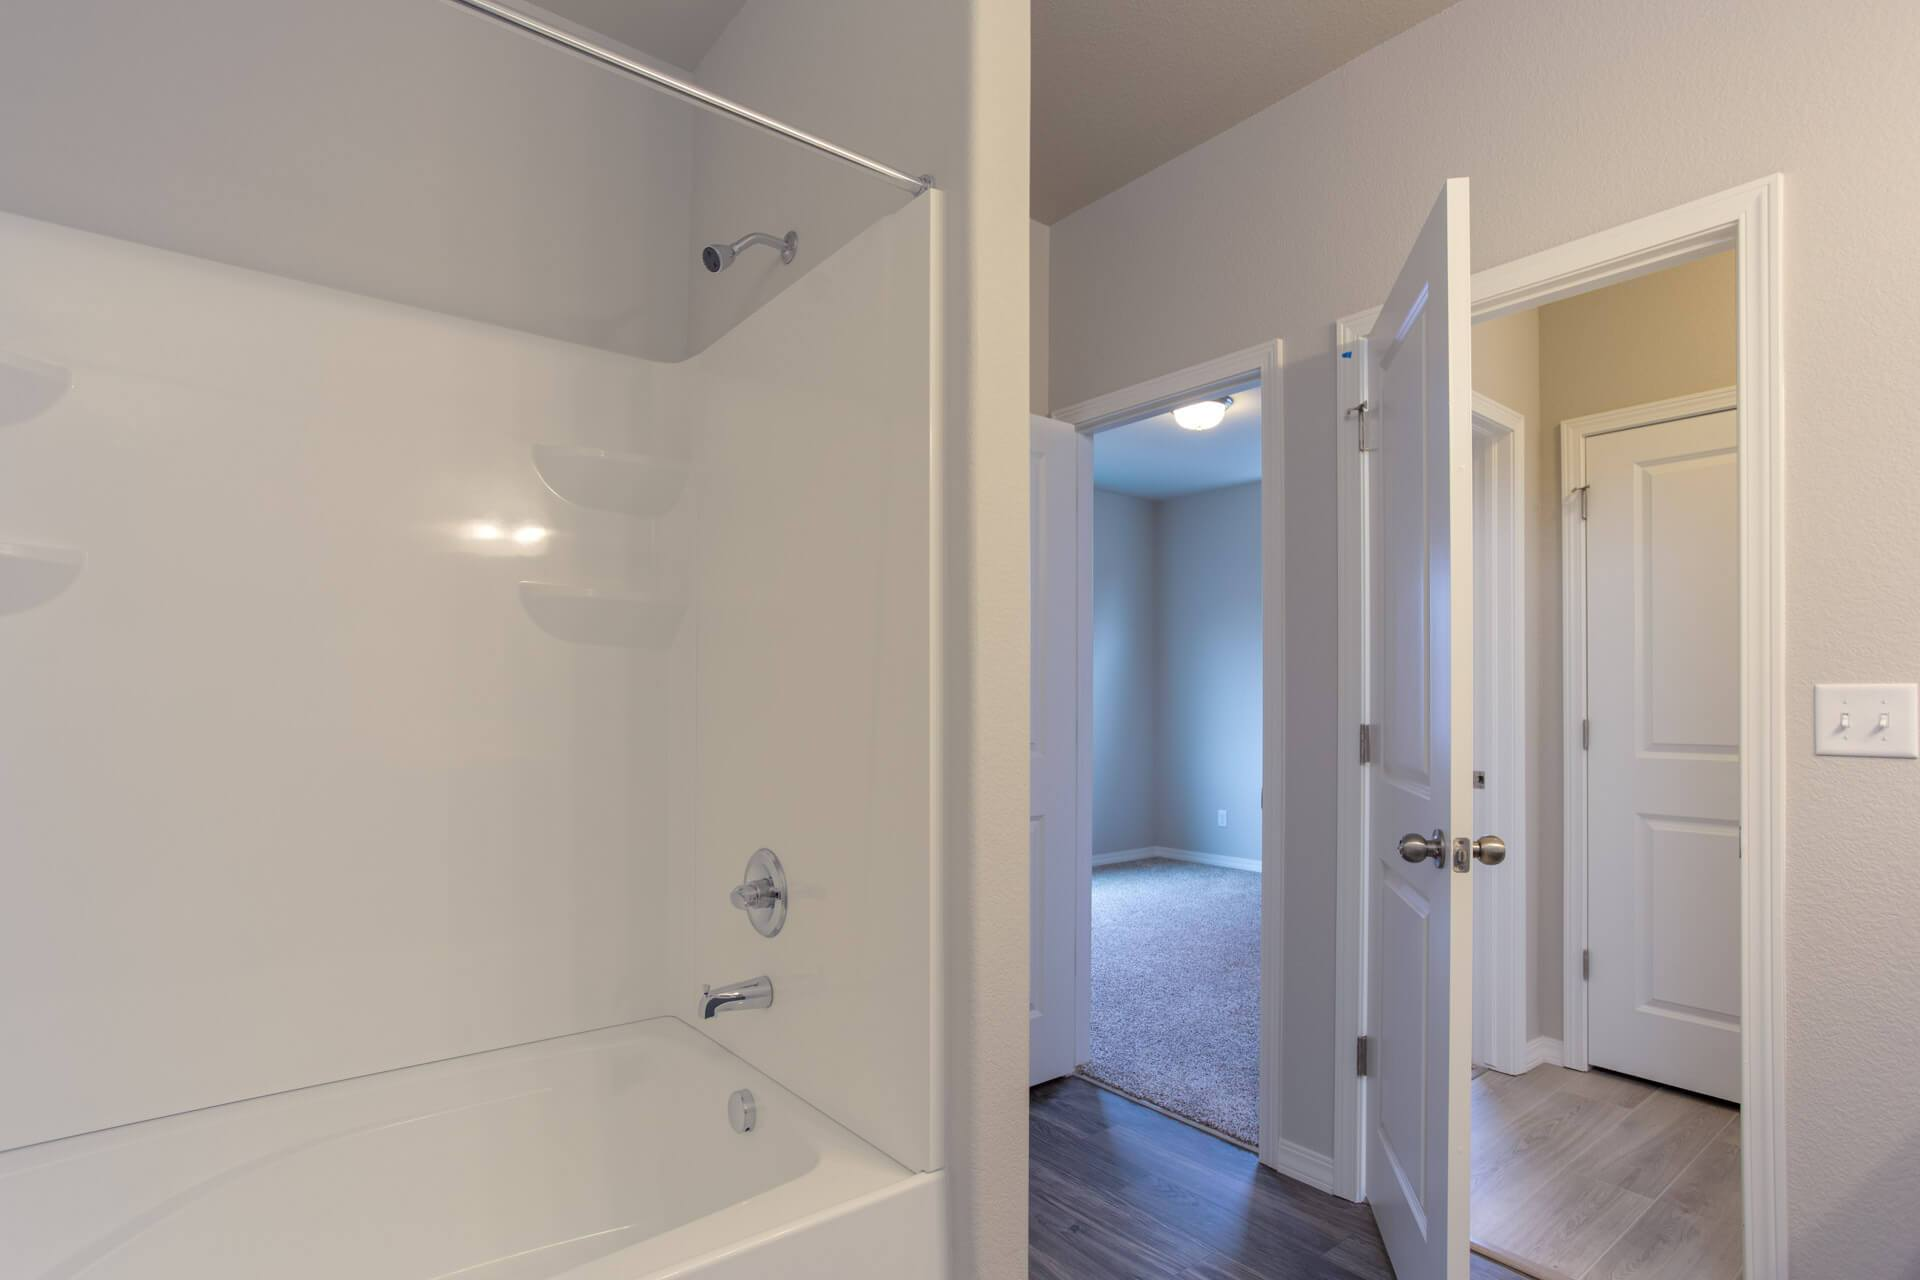 Bathroom featured in The Gladstone By Challenger Homes in Colorado Springs, CO